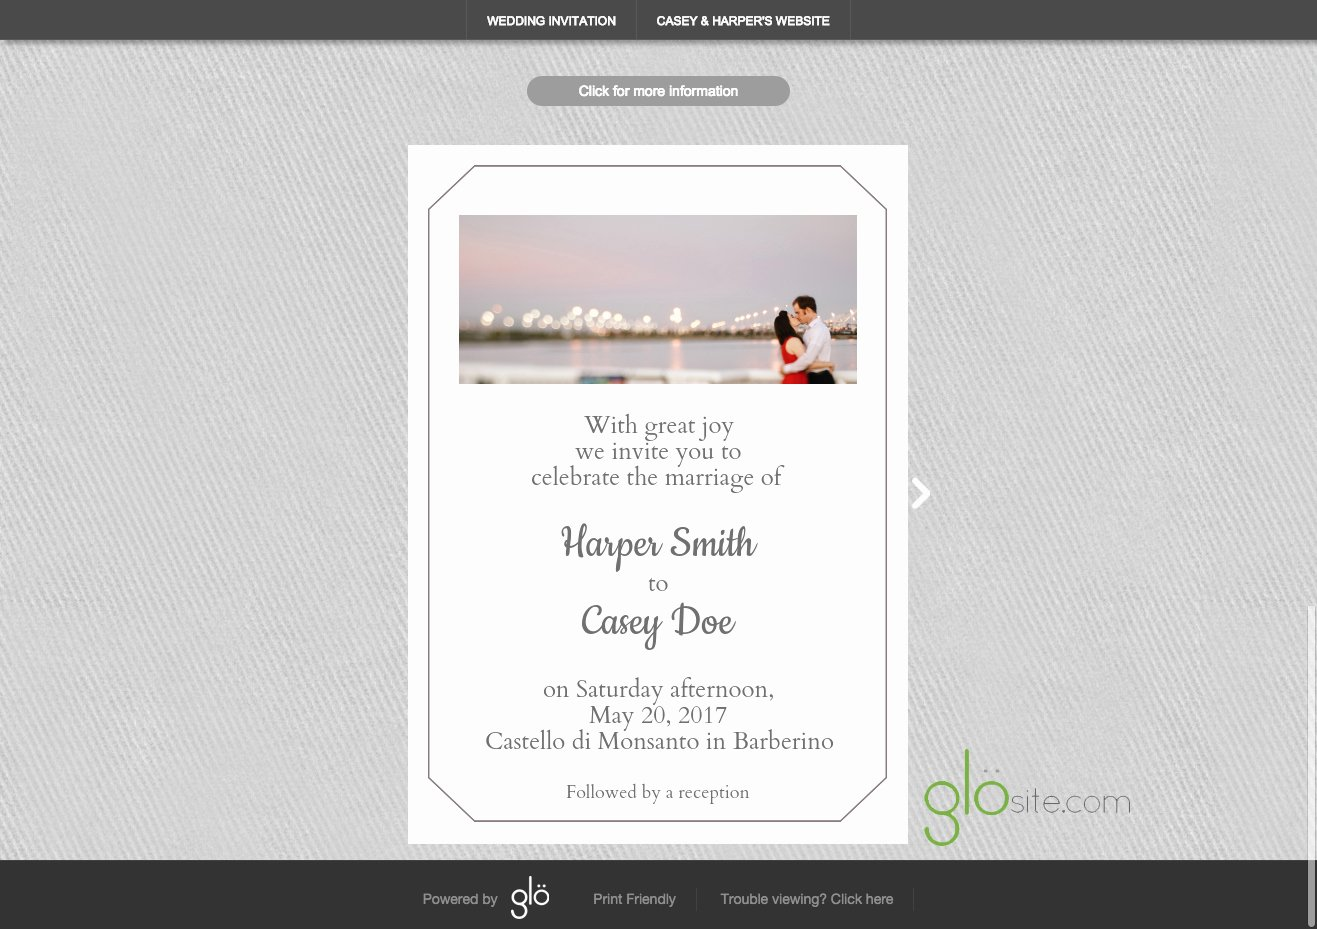 Wedding Invitation Email Template Awesome New Email Wedding Invitations Design Template Features